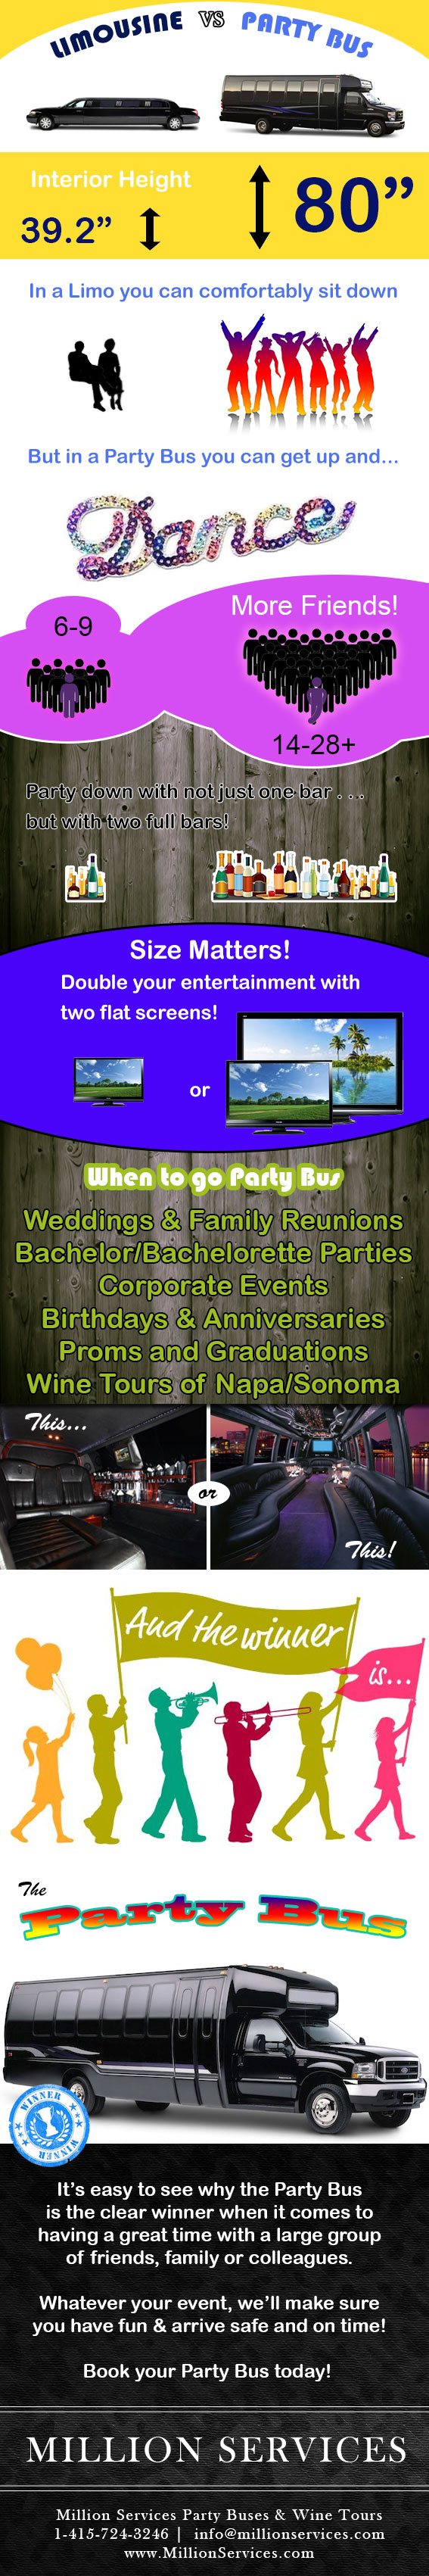 Limo or Party Bus: Which is better for you?